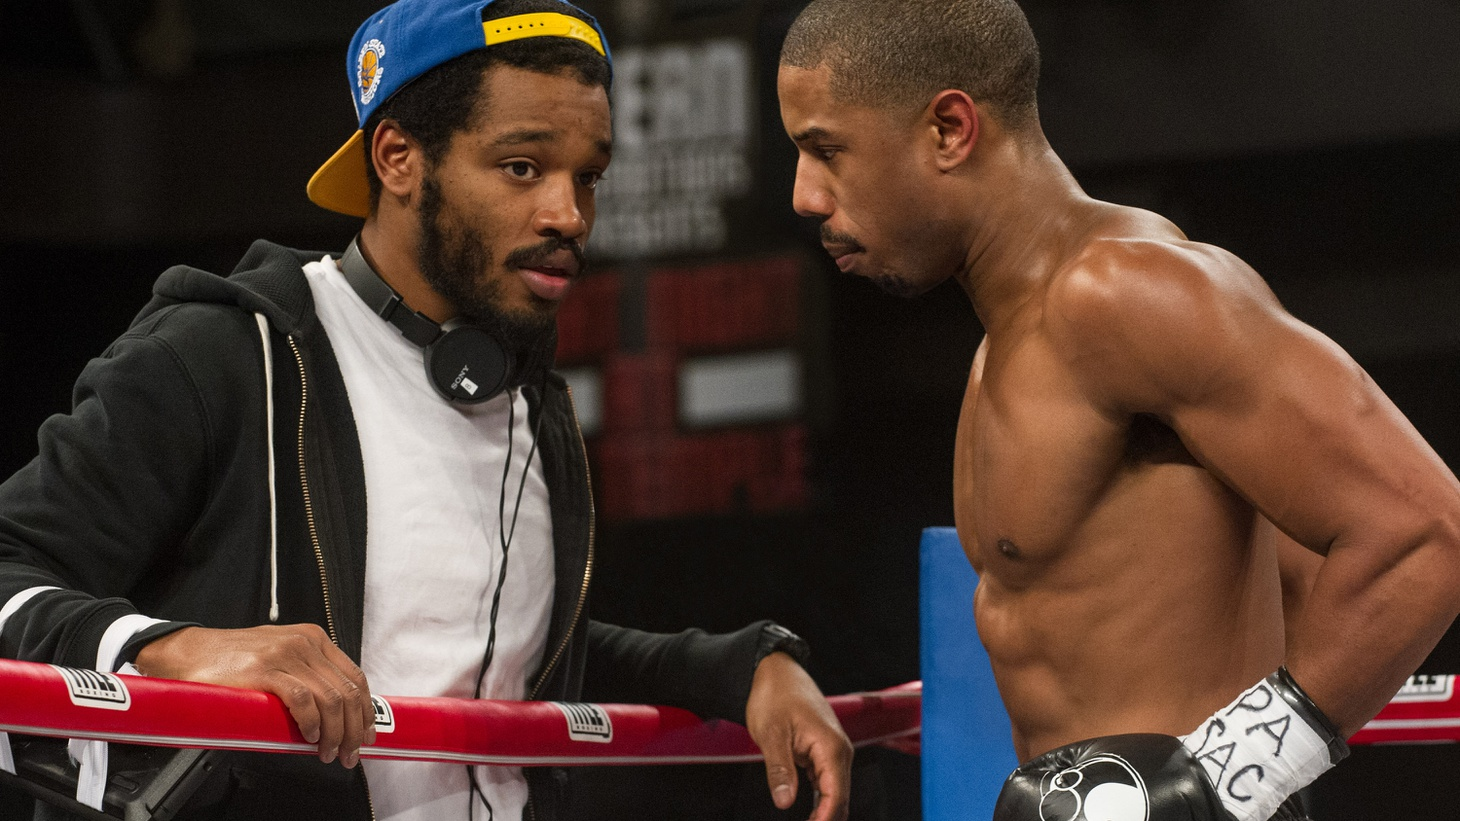 Director Ryan Coogler joins Elvis Mitchell to discuss his film Creed.